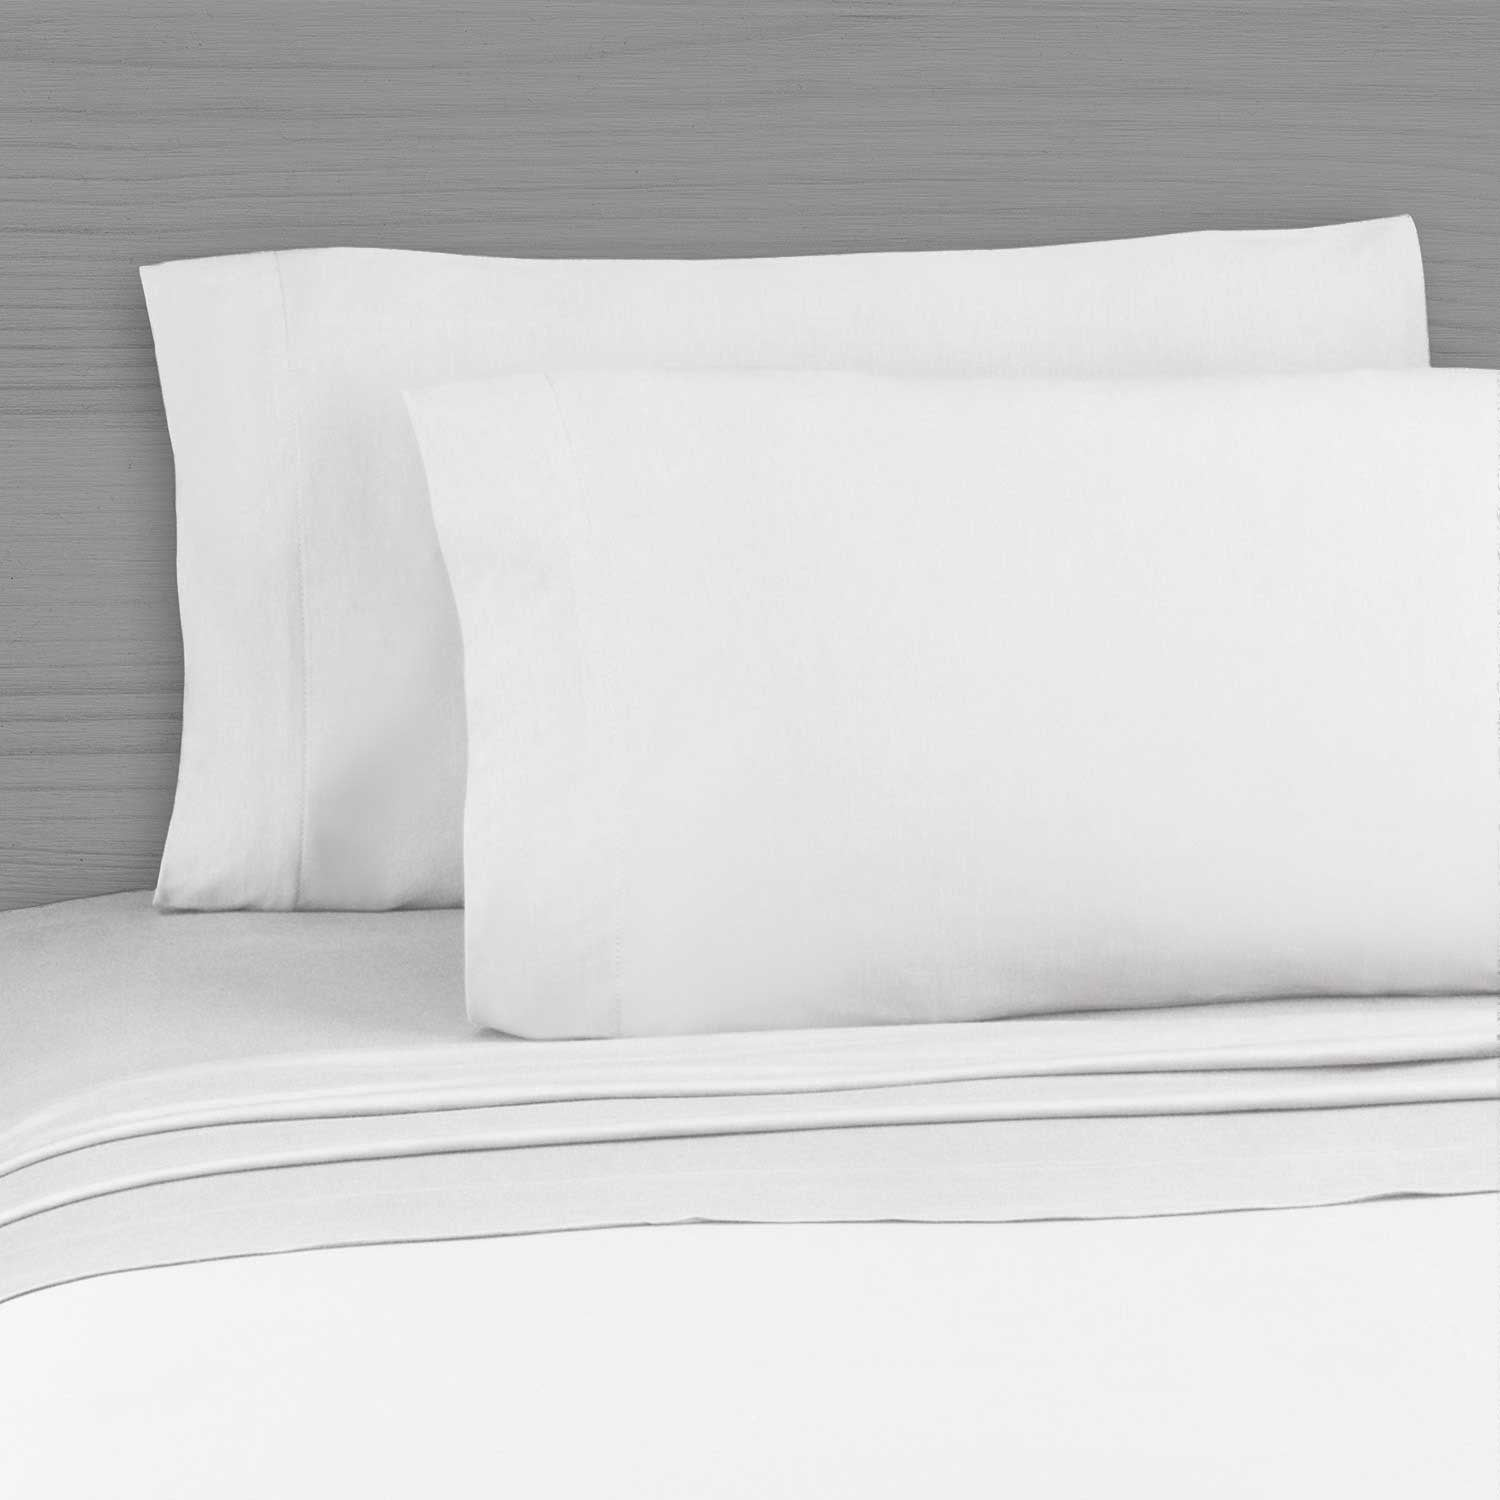 simple sheet set 220 thread count 100 cotton percale white dormify. Black Bedroom Furniture Sets. Home Design Ideas